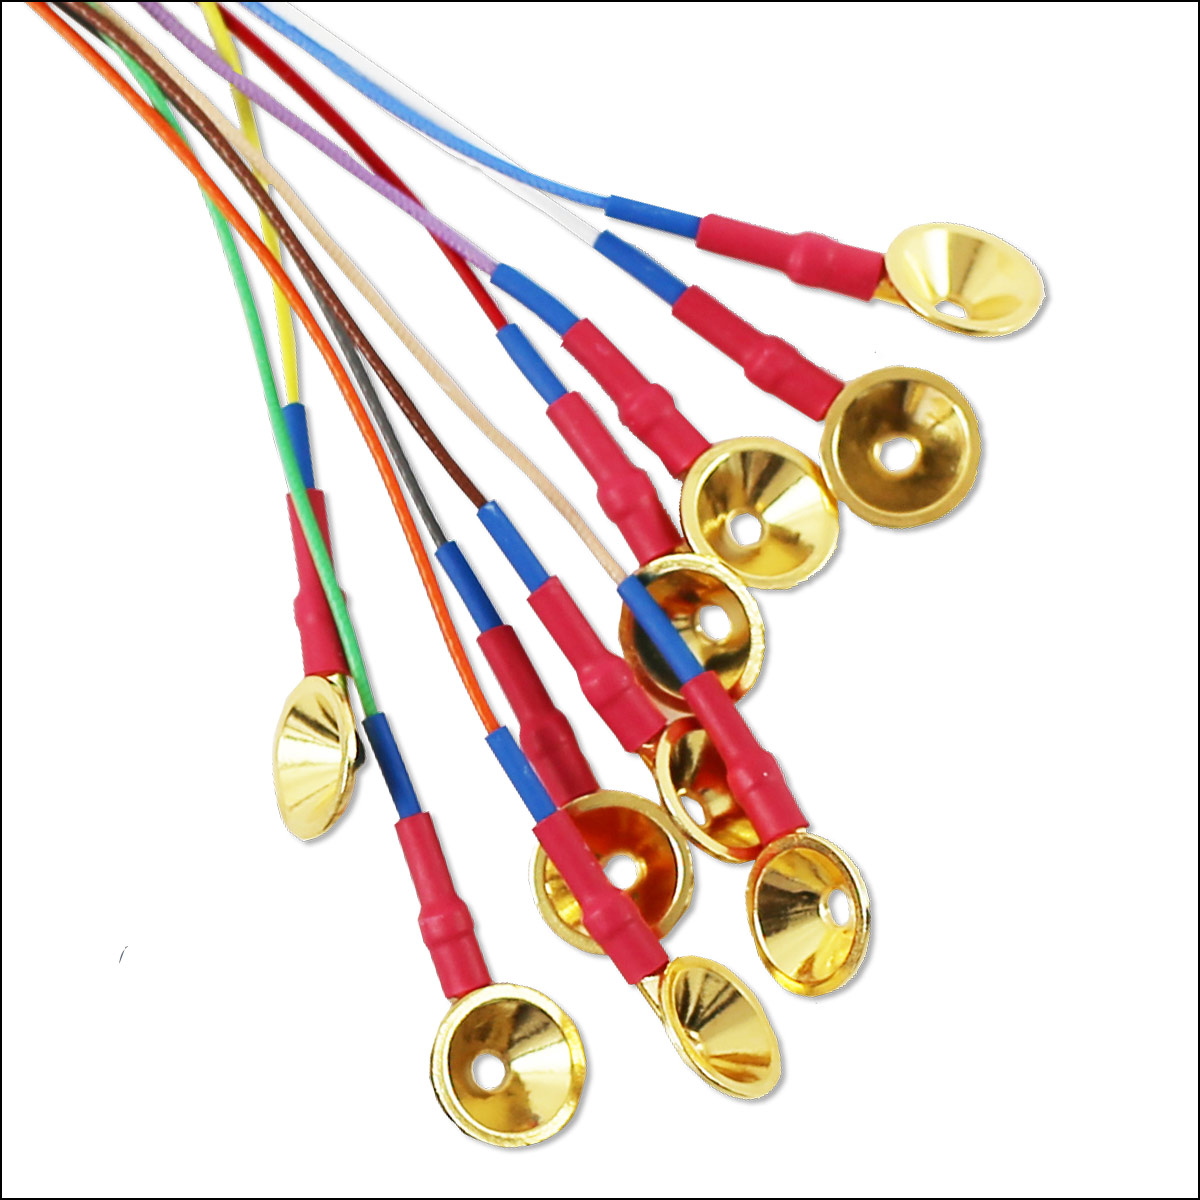 Cup Electrodes